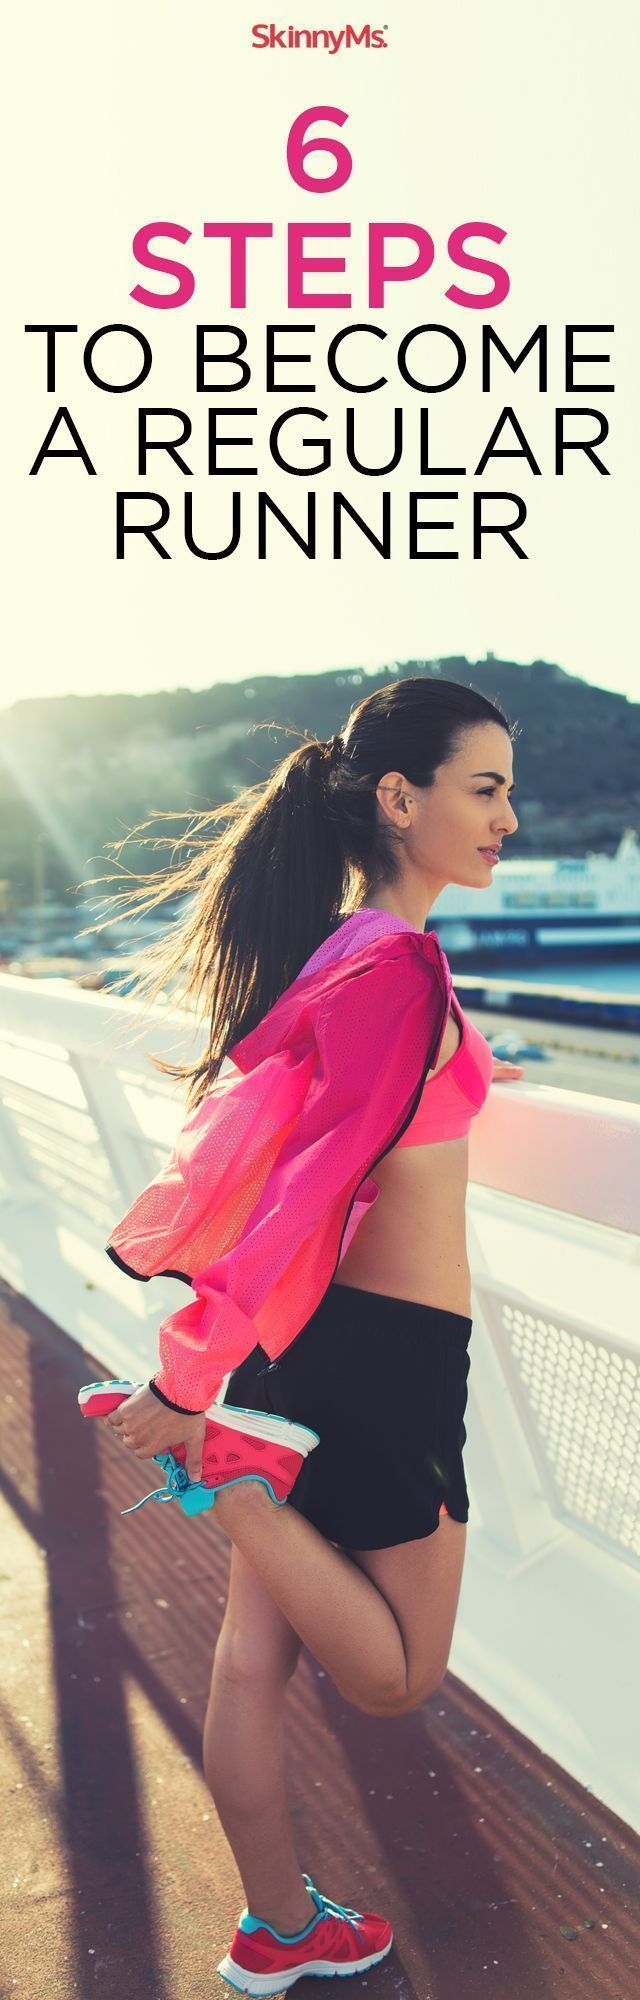 Learn these 6 Steps to train yourself to Become a Regular Runner. #running #love #skinnyms